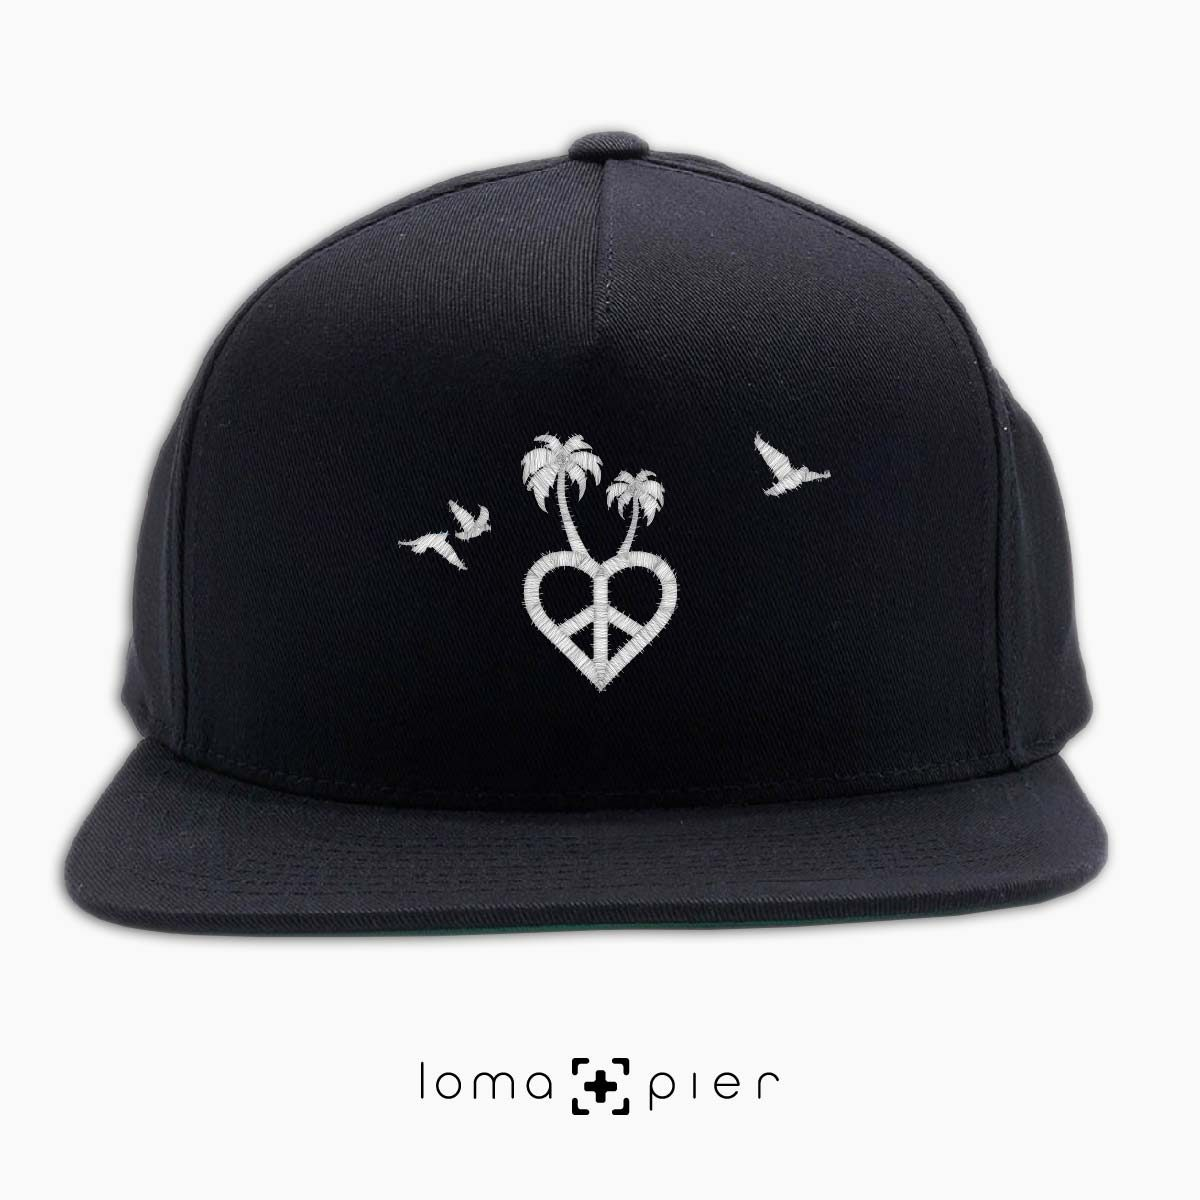 CALI VIBES icon embroidered on a black classic snapback hat with white thread by loma+pier hat store